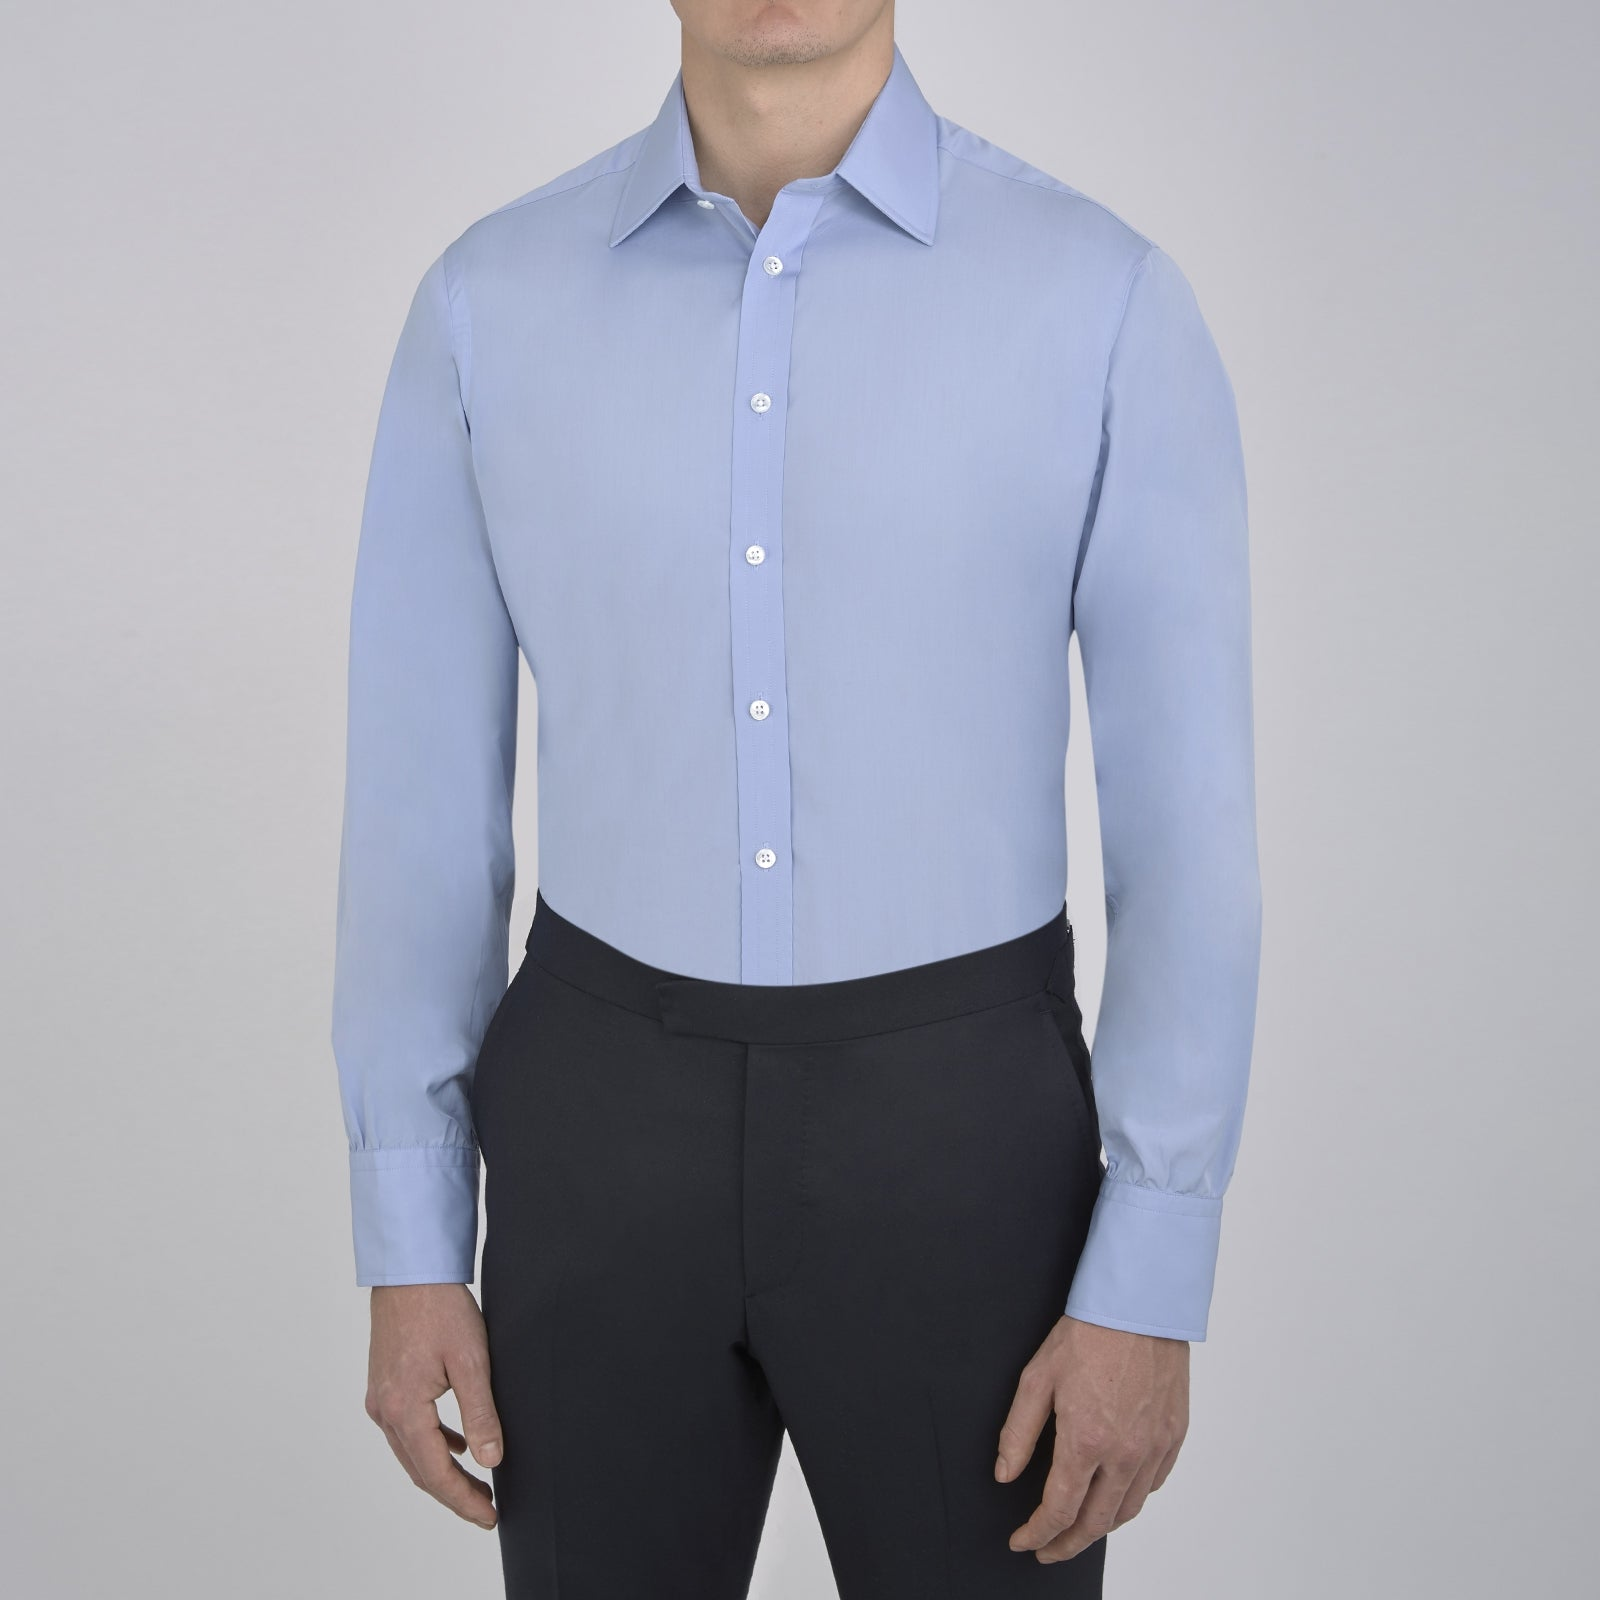 Blue Sea Island Quality Cotton Shirt with T&A Collar and 3-Button Cuffs